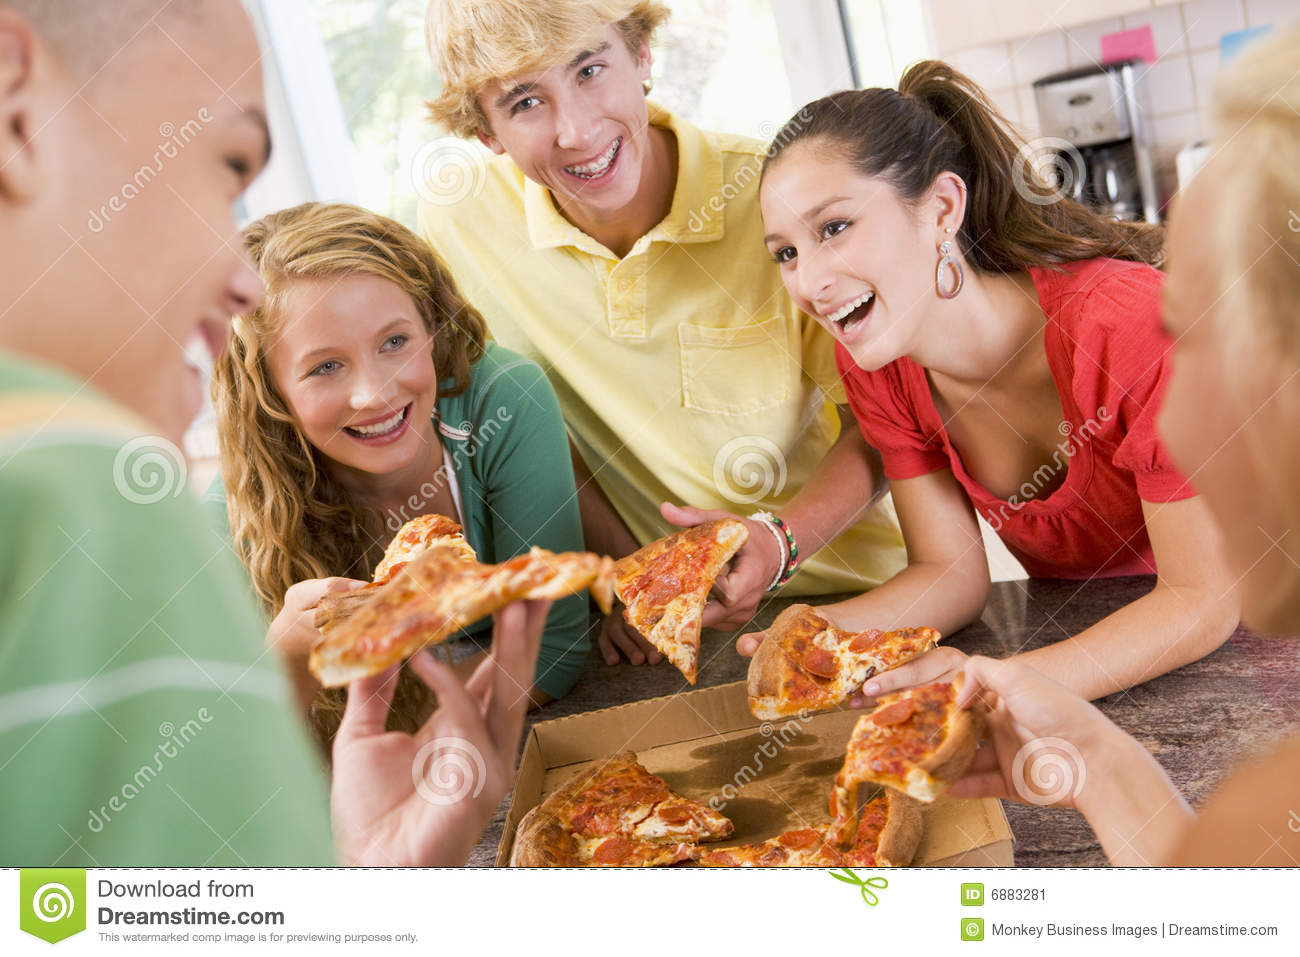 Group Of Teenagers Eating Pizza Stock Image   Image  6883281